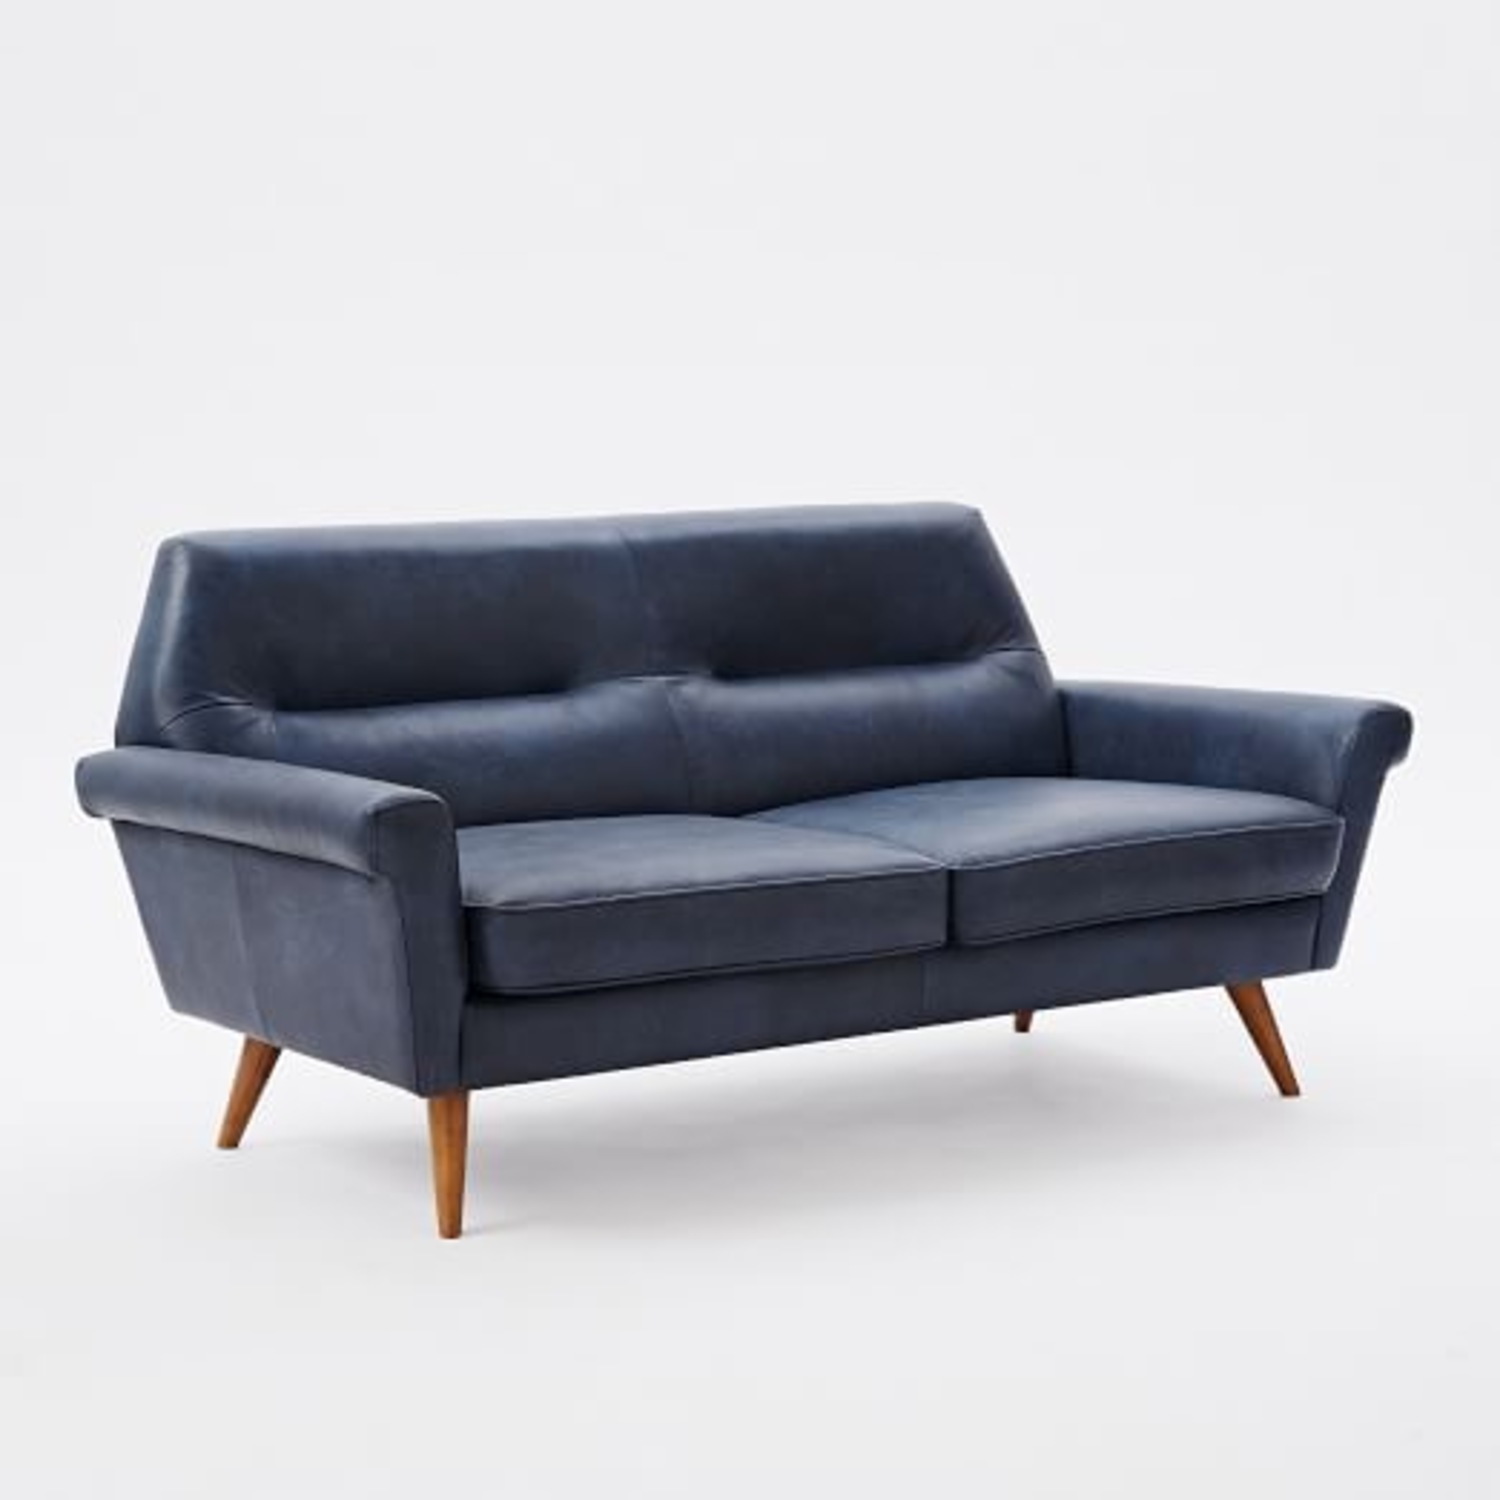 West Elm Leather 2-Seater Sofa - image-1